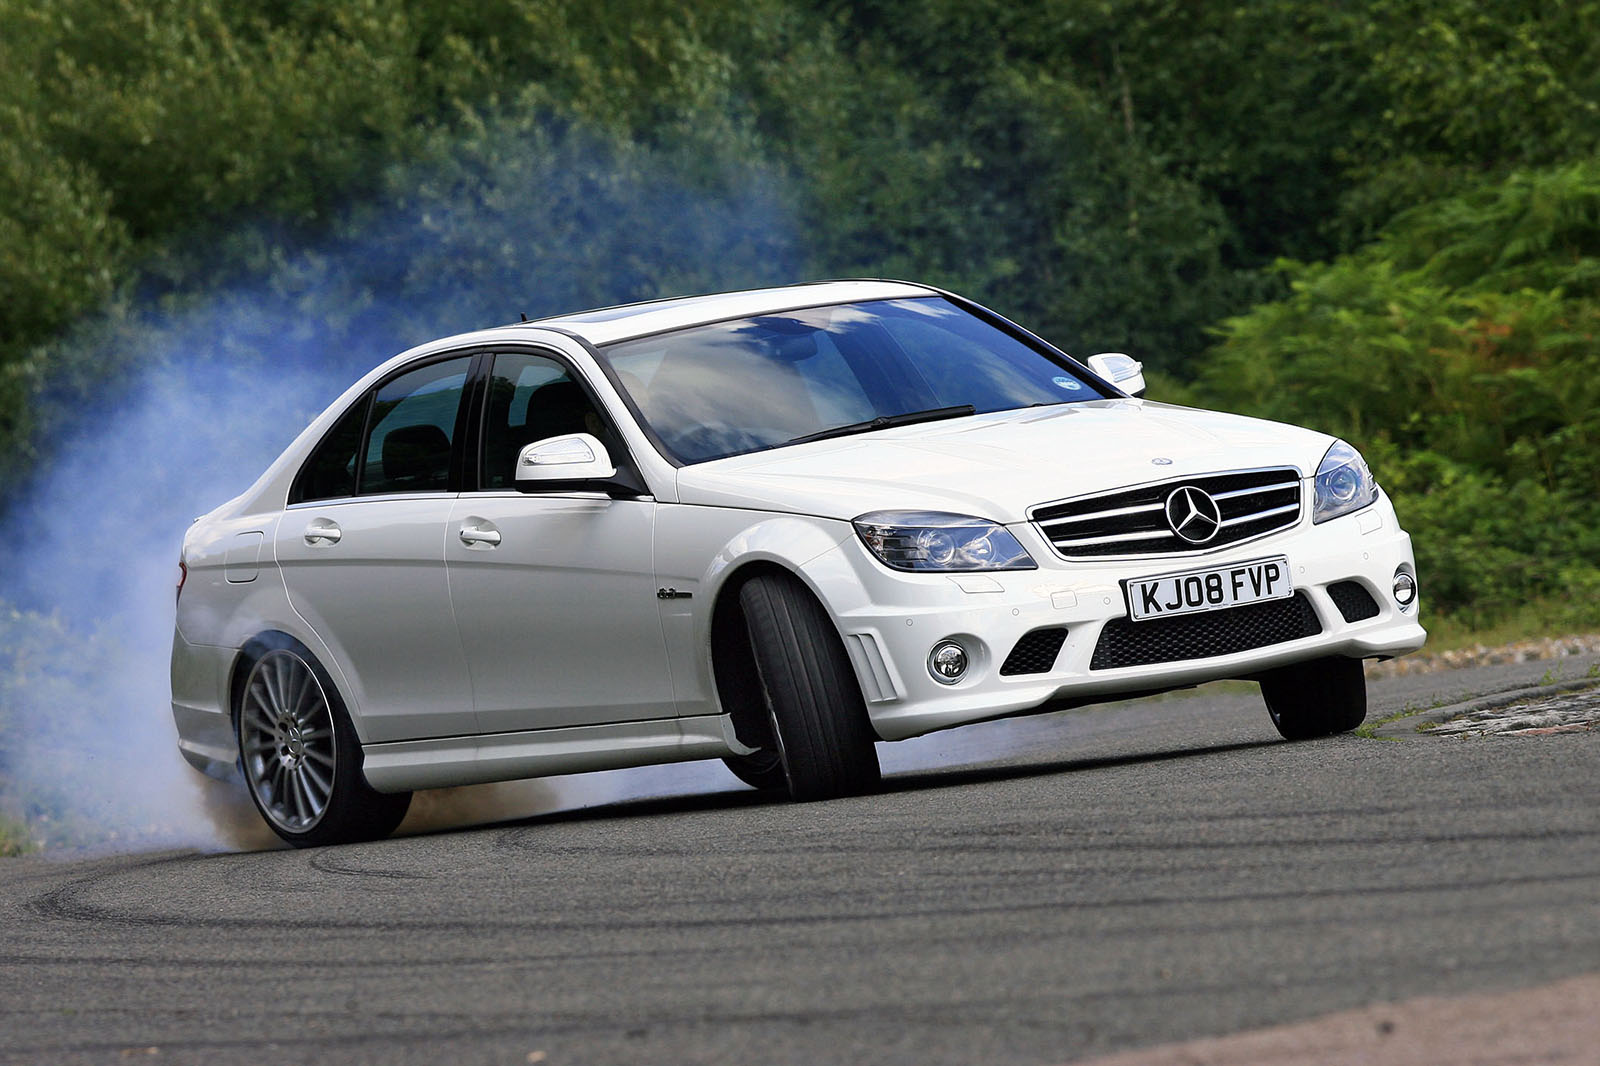 Used car buying guide: Mercedes-AMG C 63 (2008-2015)   Autocar